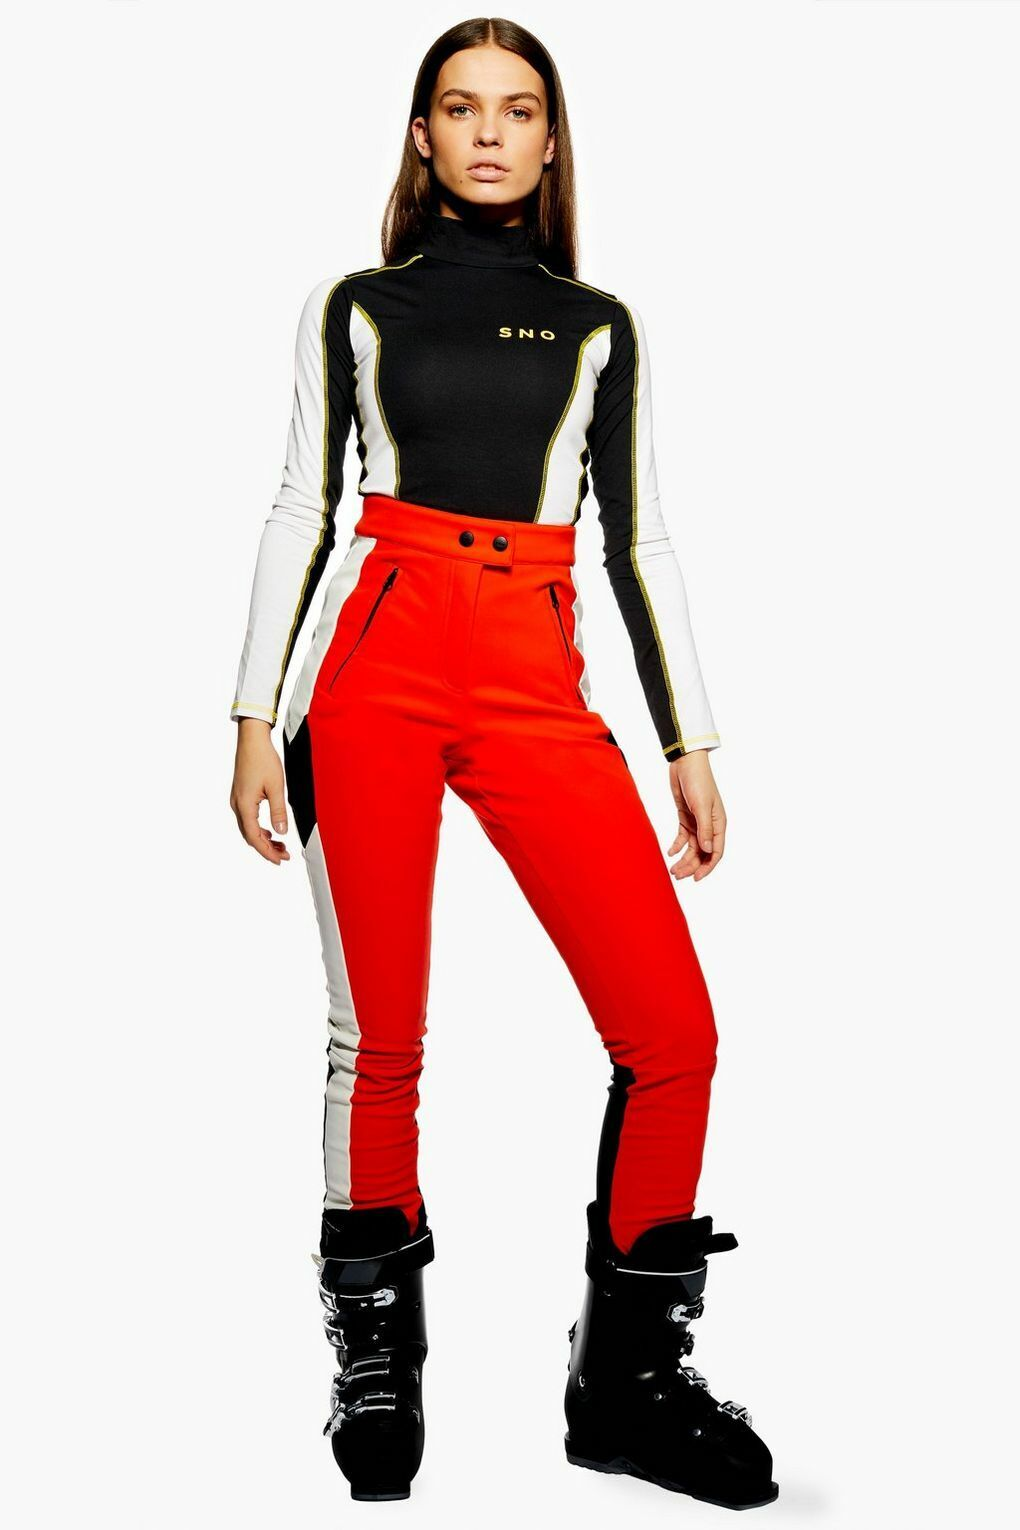 Topshop womens Ski Trousers Size UK8 UK10  UK12 UK14  order now lowest prices